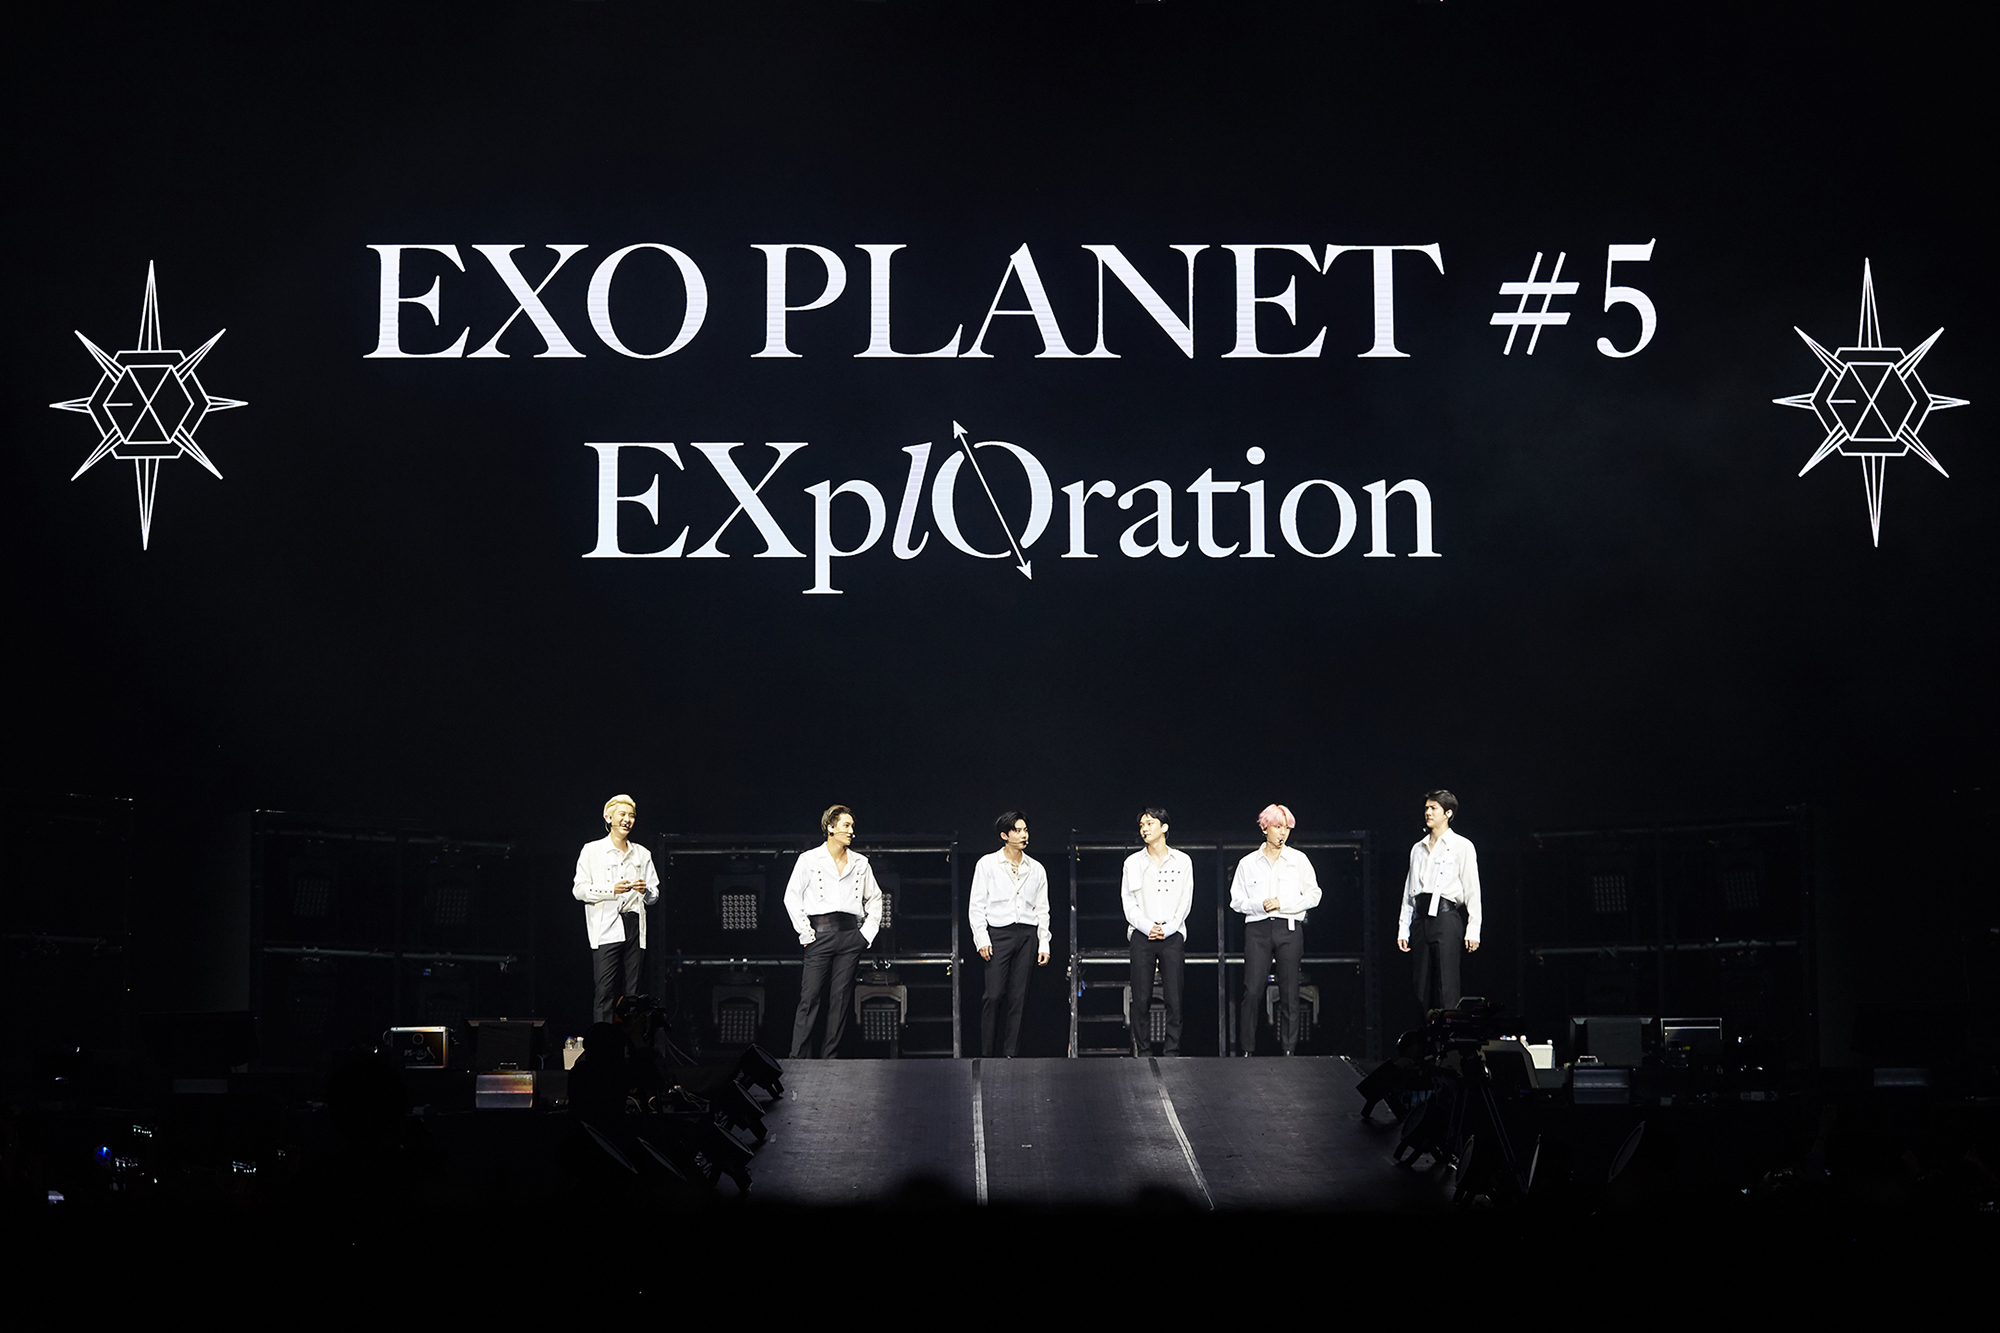 "<p>EXO(EXO, SM Entertainment and affiliation)in Manila Concert to help successfully finished.</p><p>EXO fifth solo Concert 'EXO PLANET #5 - EXplOration - in MANILA'(EXO Planet #5 - Explorer collection - Internet Manila)in the last 8 23~24, Philippines Manila Mall of Asia Arena in unfolded, and EXOs colorful music and performance, engaging with high-quality performances as the audience was enthusiastic. Especially, this Concert is approximately 1 year and 4 months in the open EXOs Manila solo Concert as much as it is, the first scheduled for 1 gig local fanss heated response with a ticket Open at the same time sold records, 1 times to add a total of 2 circuits spread EXOs high popularity once again confirmed the application had. 'Tempo'to this performance of because EXO is 'growl', 'addiction', 'CALL ME BABY', 'Monster', including the mega-hit song from 'Love Shot', 'touch the moment', 'Gravity', 'after the storm', 'Damage', such as the regular 5 home and repackage album tracklist stage, each with a different personality filled solo and unit stage up to a total of 23 songs to explosive Cheers was obtained. Also the seats filled with the audience is a Philippines national flag colors of yellow, red, blue, white 4 kinds of color dress code by wearing tailored LED cheer Bong-waving performances enthusiastically enjoyed, Of course, 'IN THE NAME OF Love, EXO'(in the name of love, EXO), 'EXO Mahal kita'(EXO love)the phrase contains the slogan, the event also featured the heart-warming, including more. Philippines Concert for the Holy One EXO on who they ""increased the best performances that EXO"", ""too much Language"", ""want to see EXO ㅠㅠㅠ"" such reactions are showing. Meanwhile, EXO 9 15 Singapore Indore Stadium in 'EXO PLANET #5 - EXplOration - in SINGAPORE'to hold.</p><p>iMBC Baek 